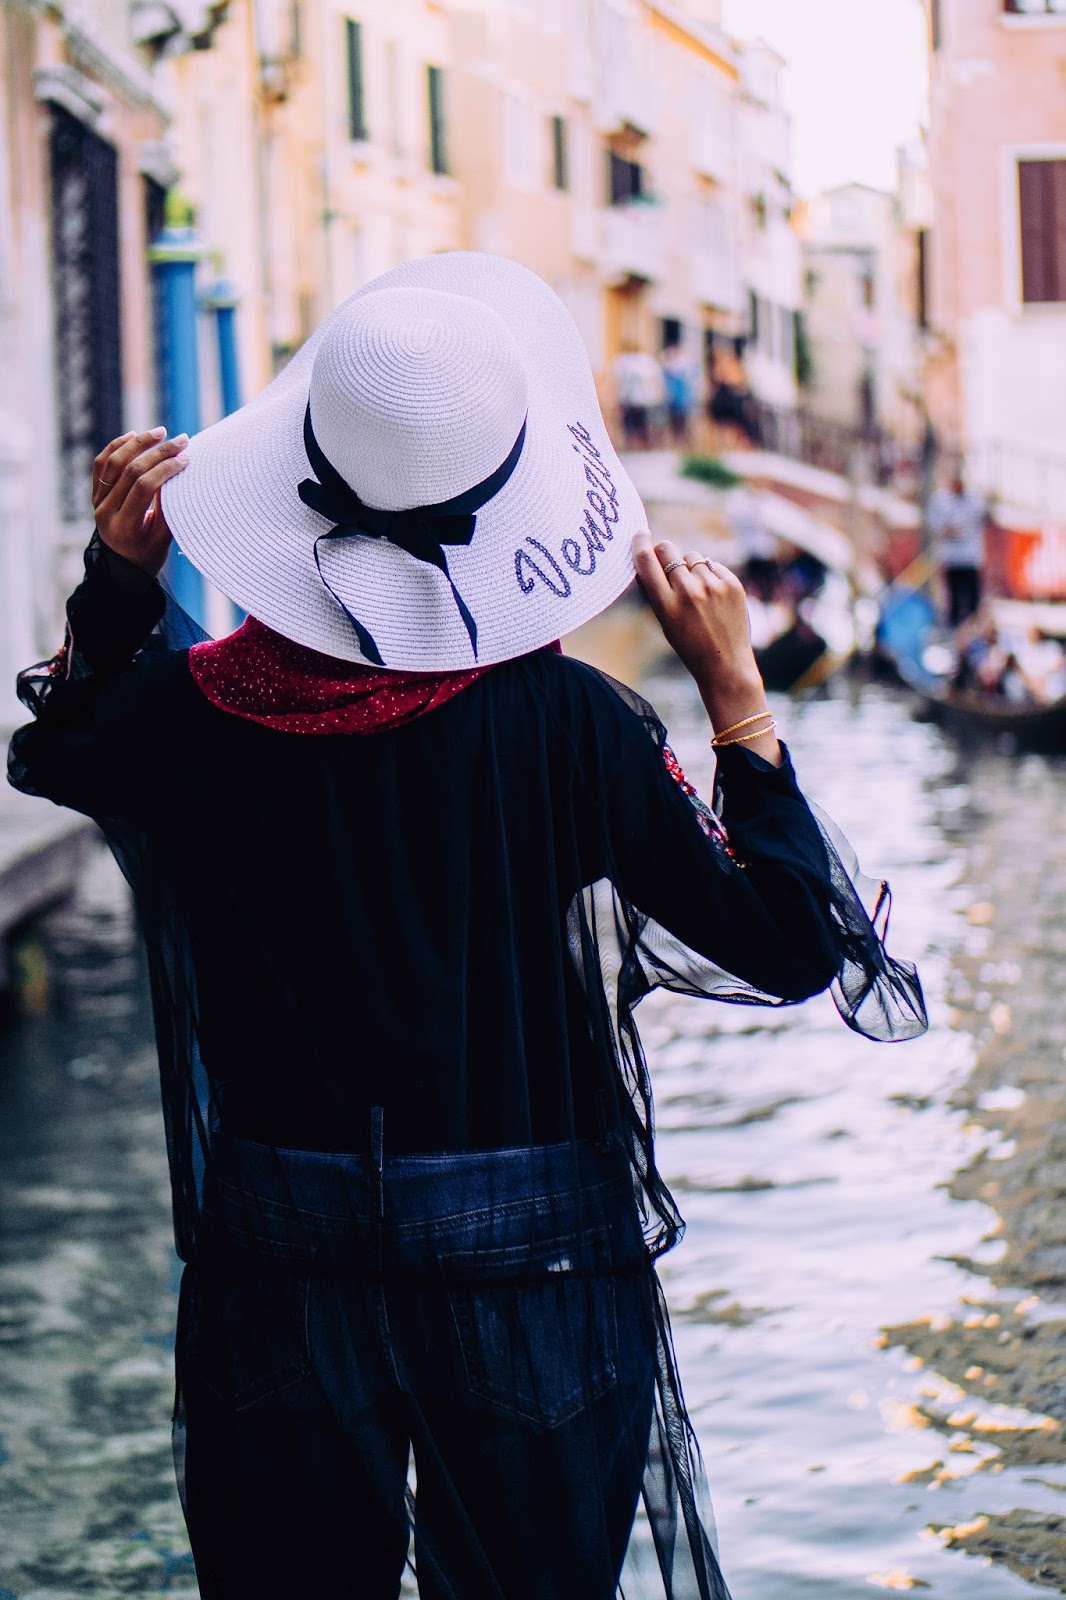 Venizia Straw Hat in Venice